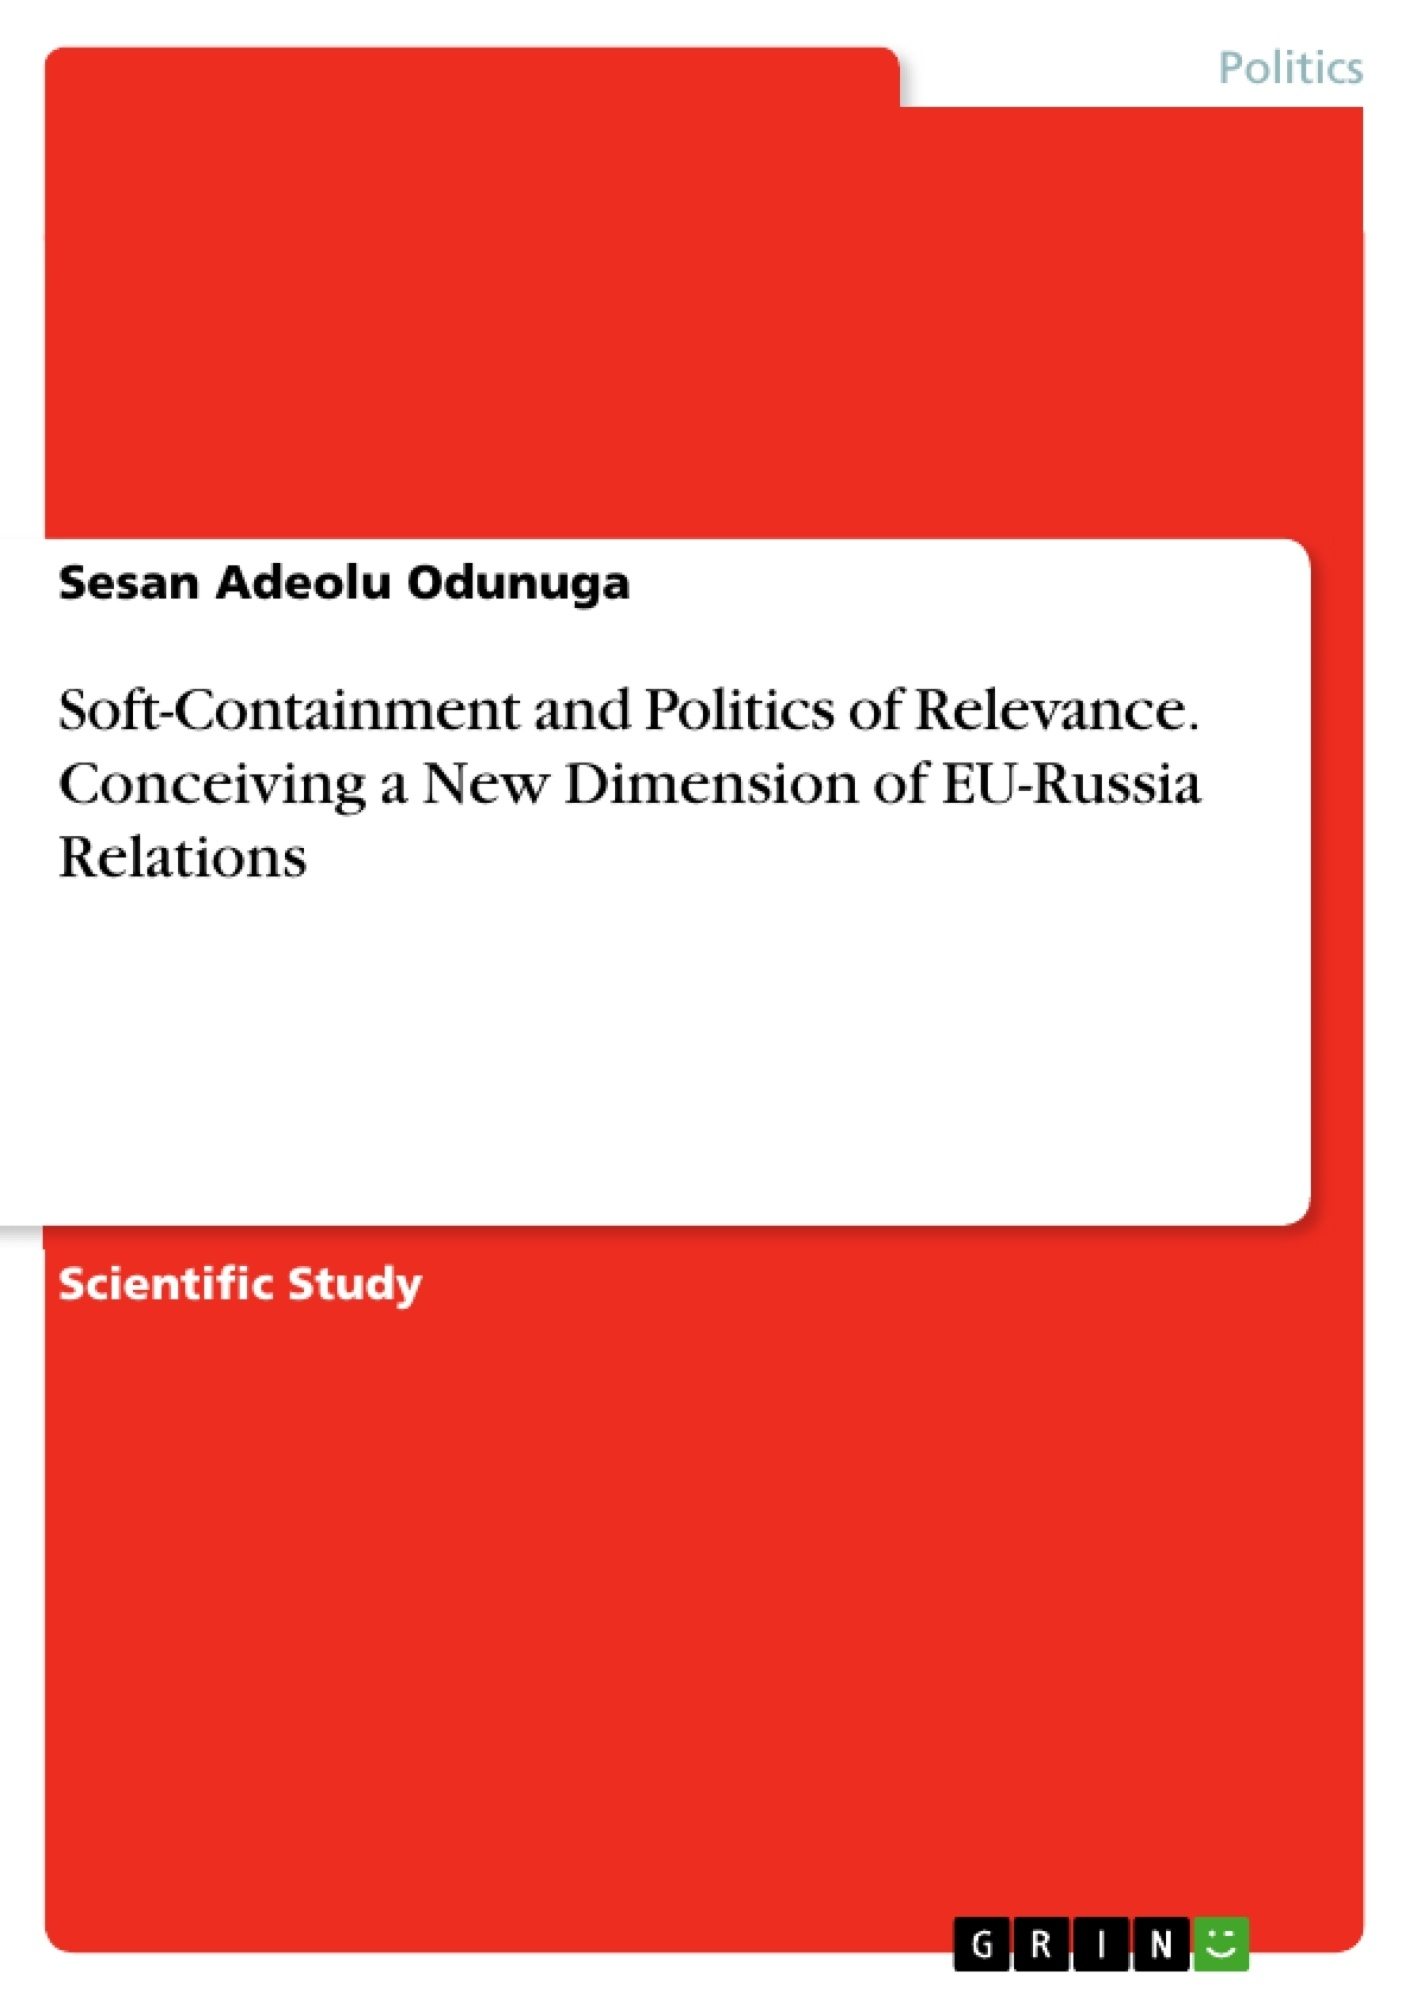 Title: Soft-Containment and Politics of Relevance. Conceiving a New Dimension of EU-Russia Relations